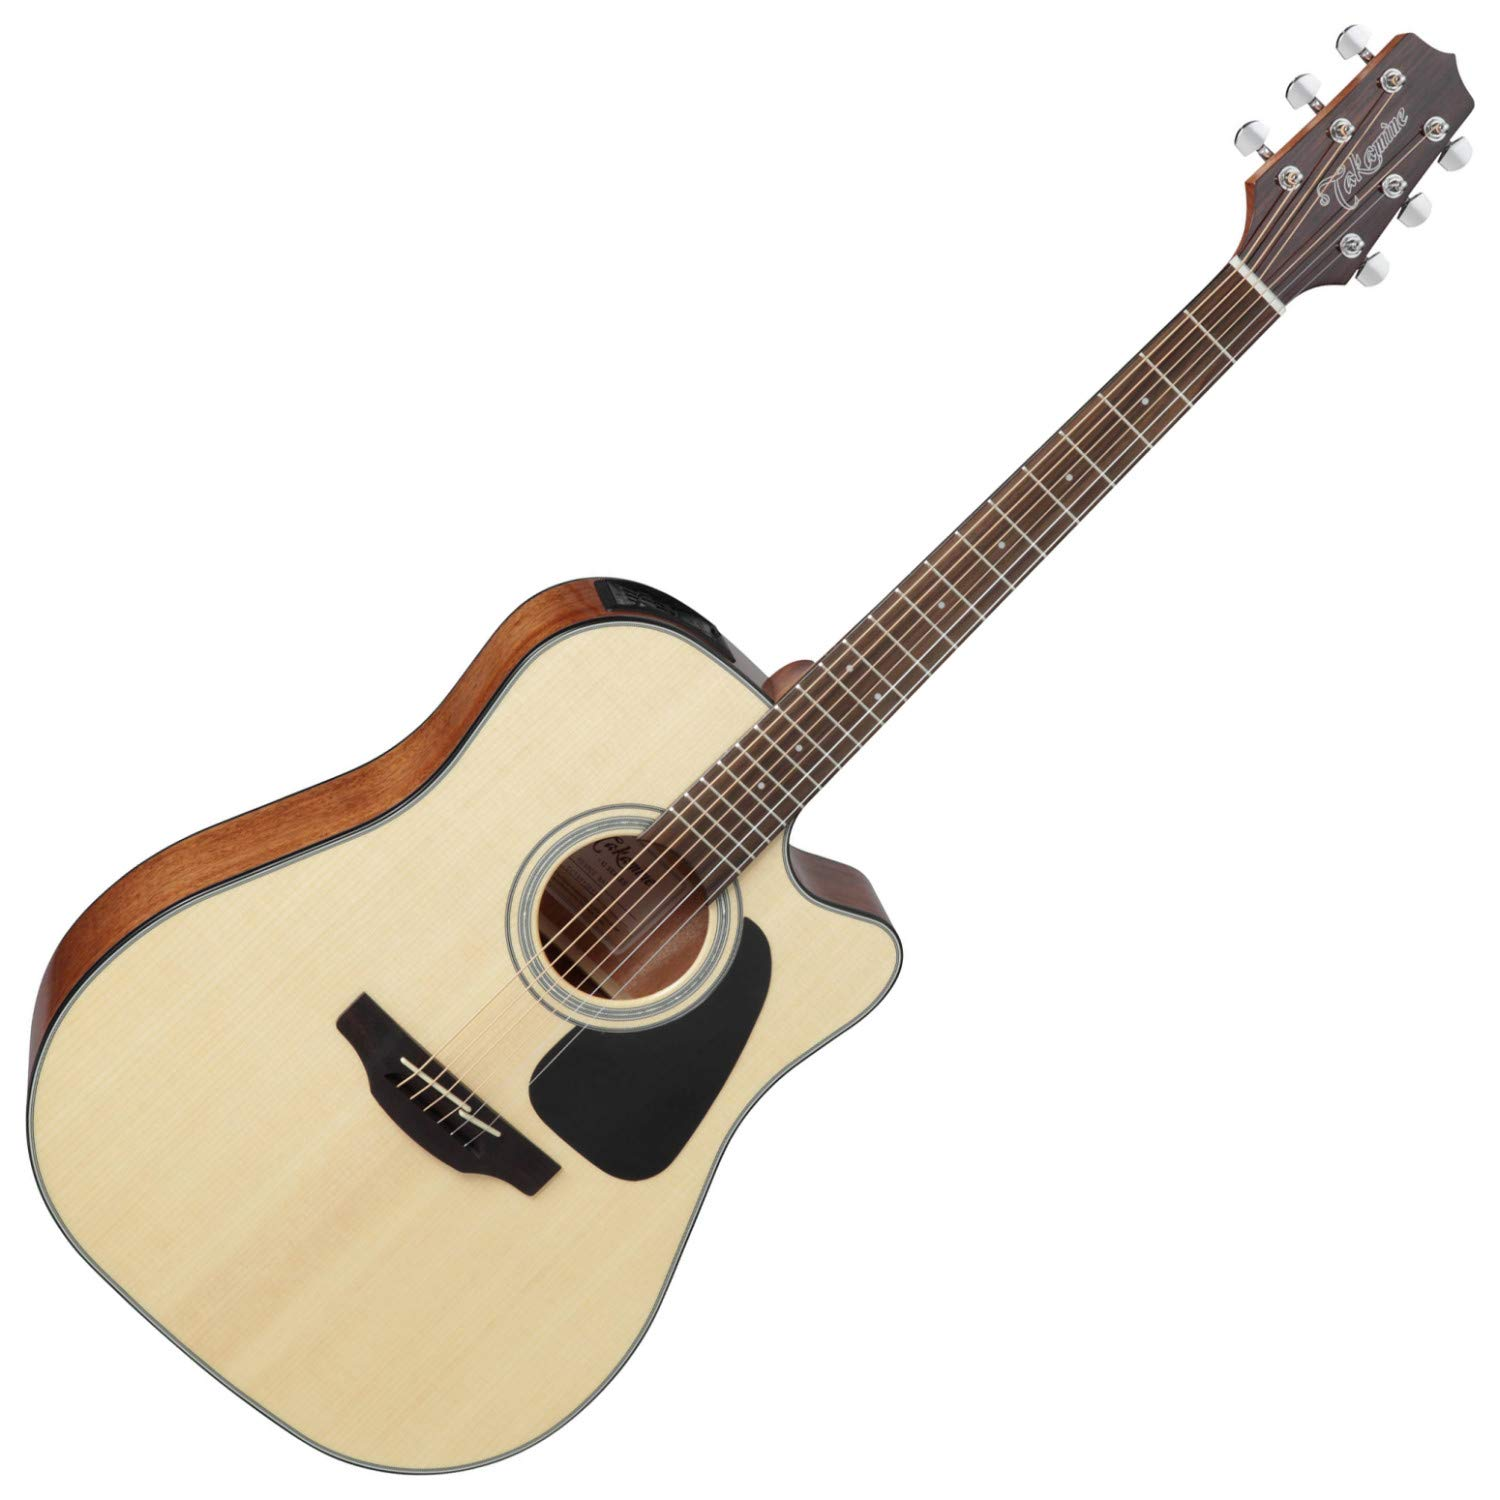 Takamine G-Series GD30CE - Best for Recording in the Studio